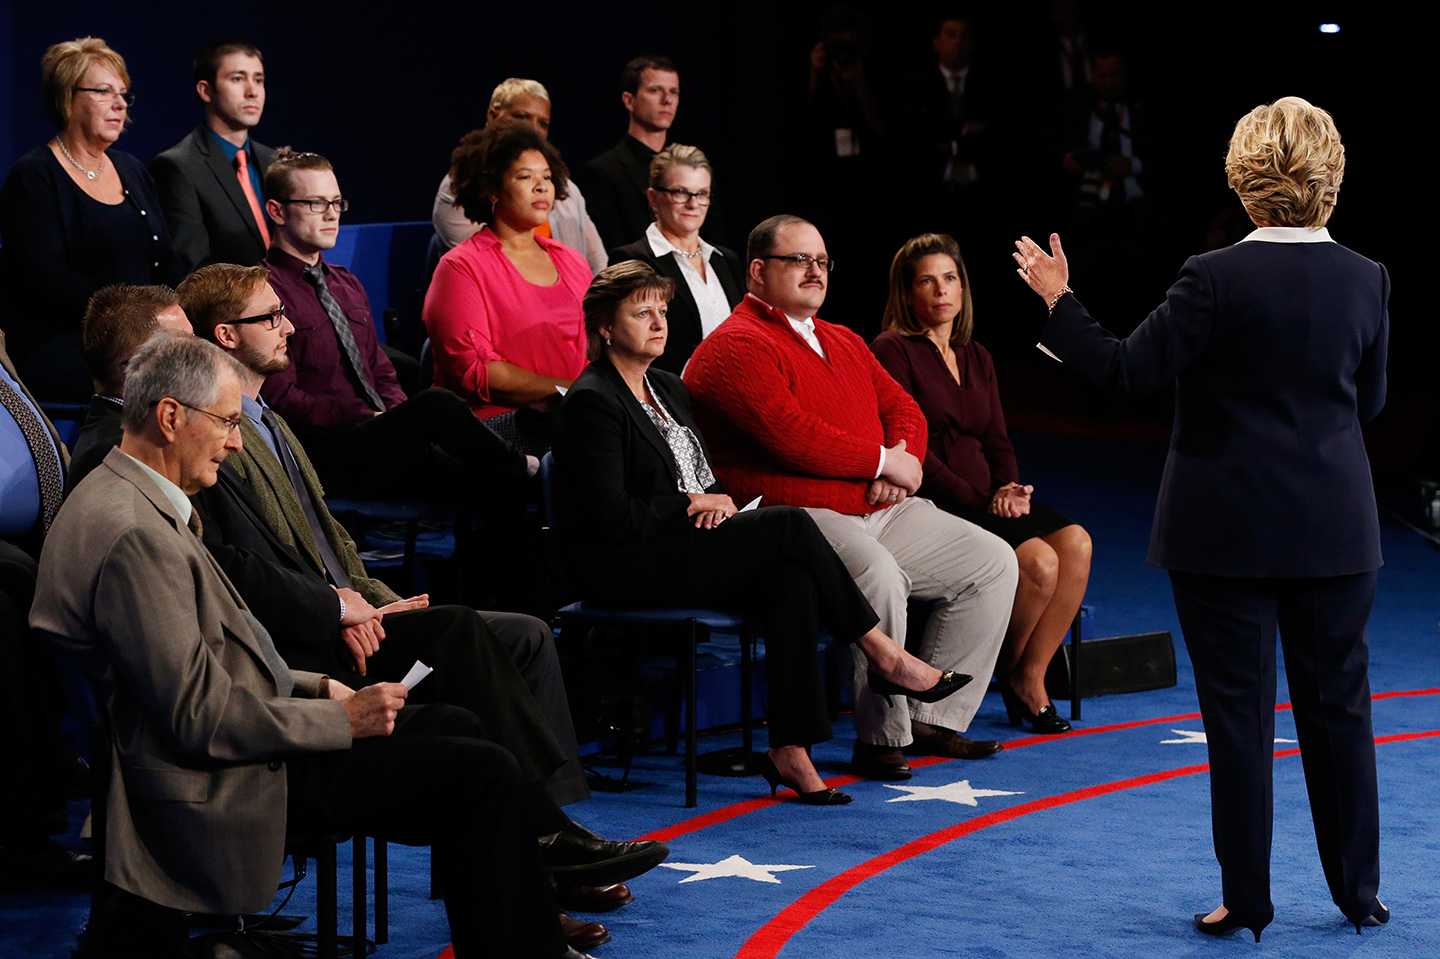 Pence wrongly says he was misquoted at debate